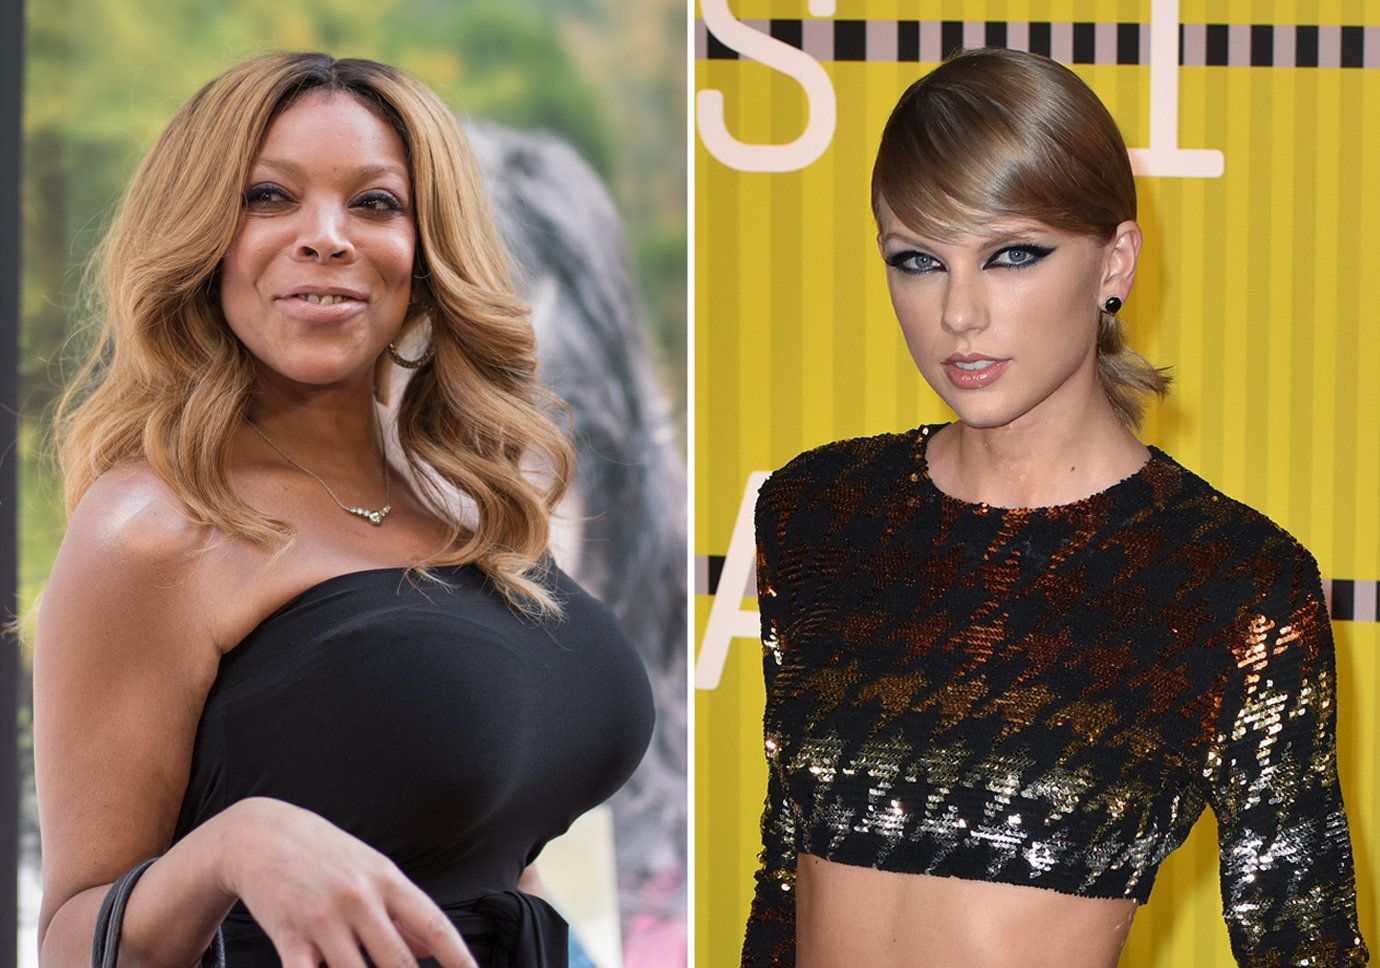 Photo of Wendy Williams by Mike Pont/WireImage; Photo of Taylor Swift by C Flanigan/Getty Images